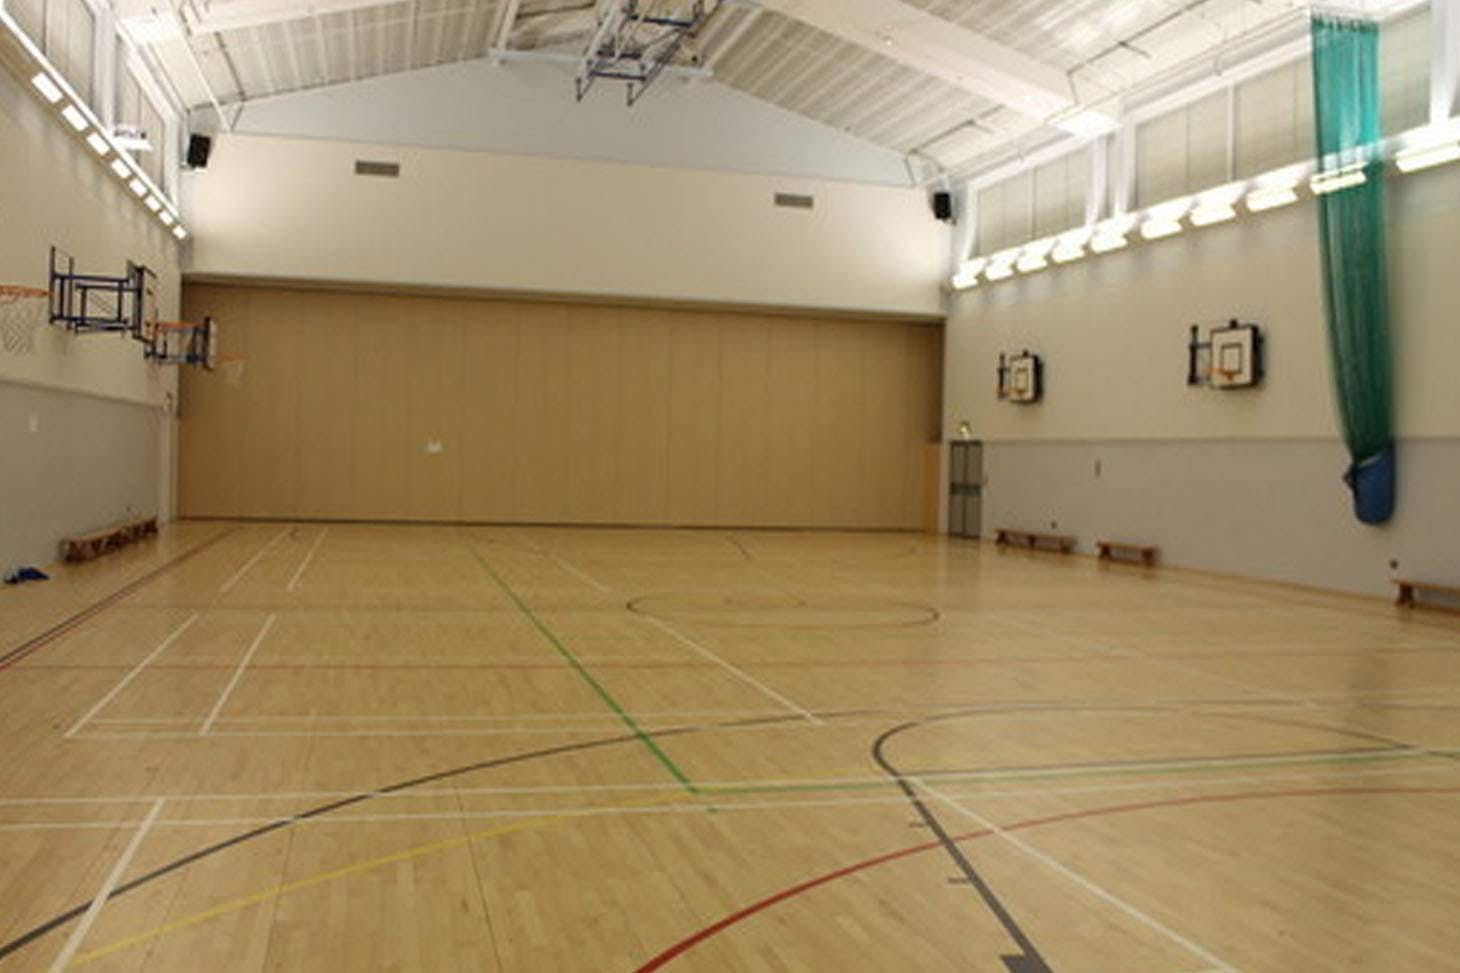 Whitburn C of E Academy Court | Sports hall volleyball court